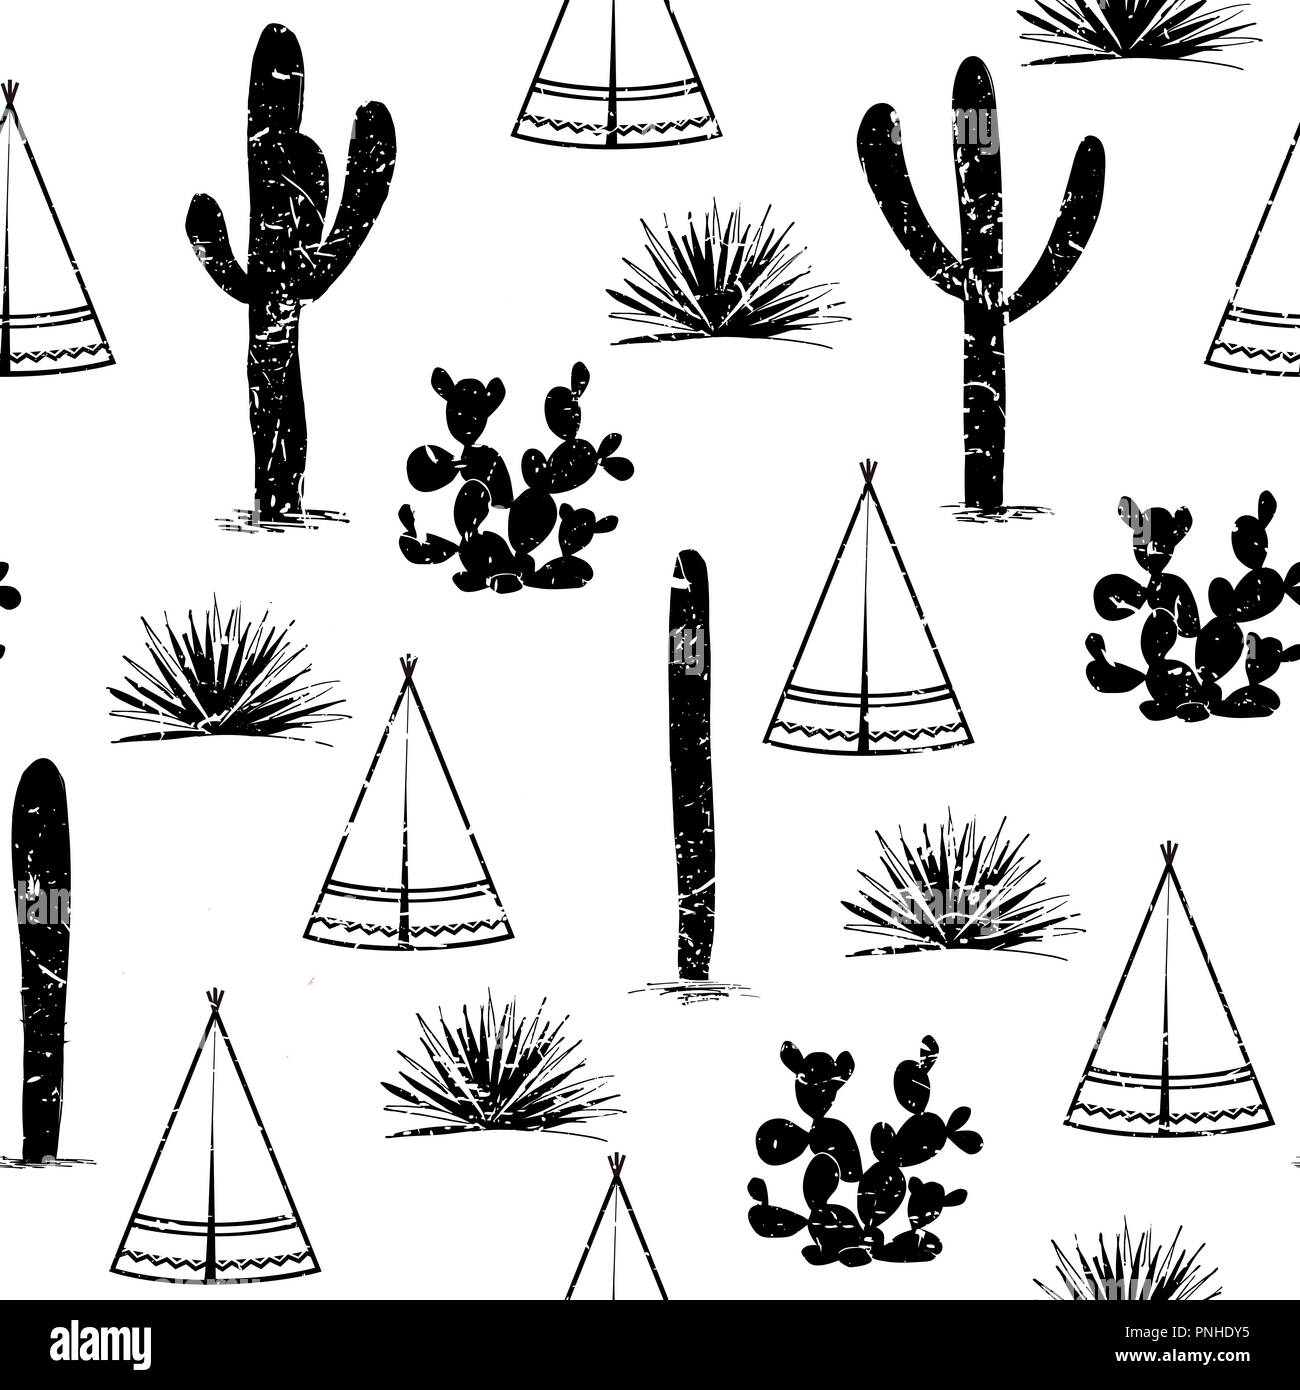 Indian tribal background. Simple flat wigwam, cactus, and grass. Seamless pattern landscape. Minimalist design. Cartoon illustration, vector, black an - Stock Vector